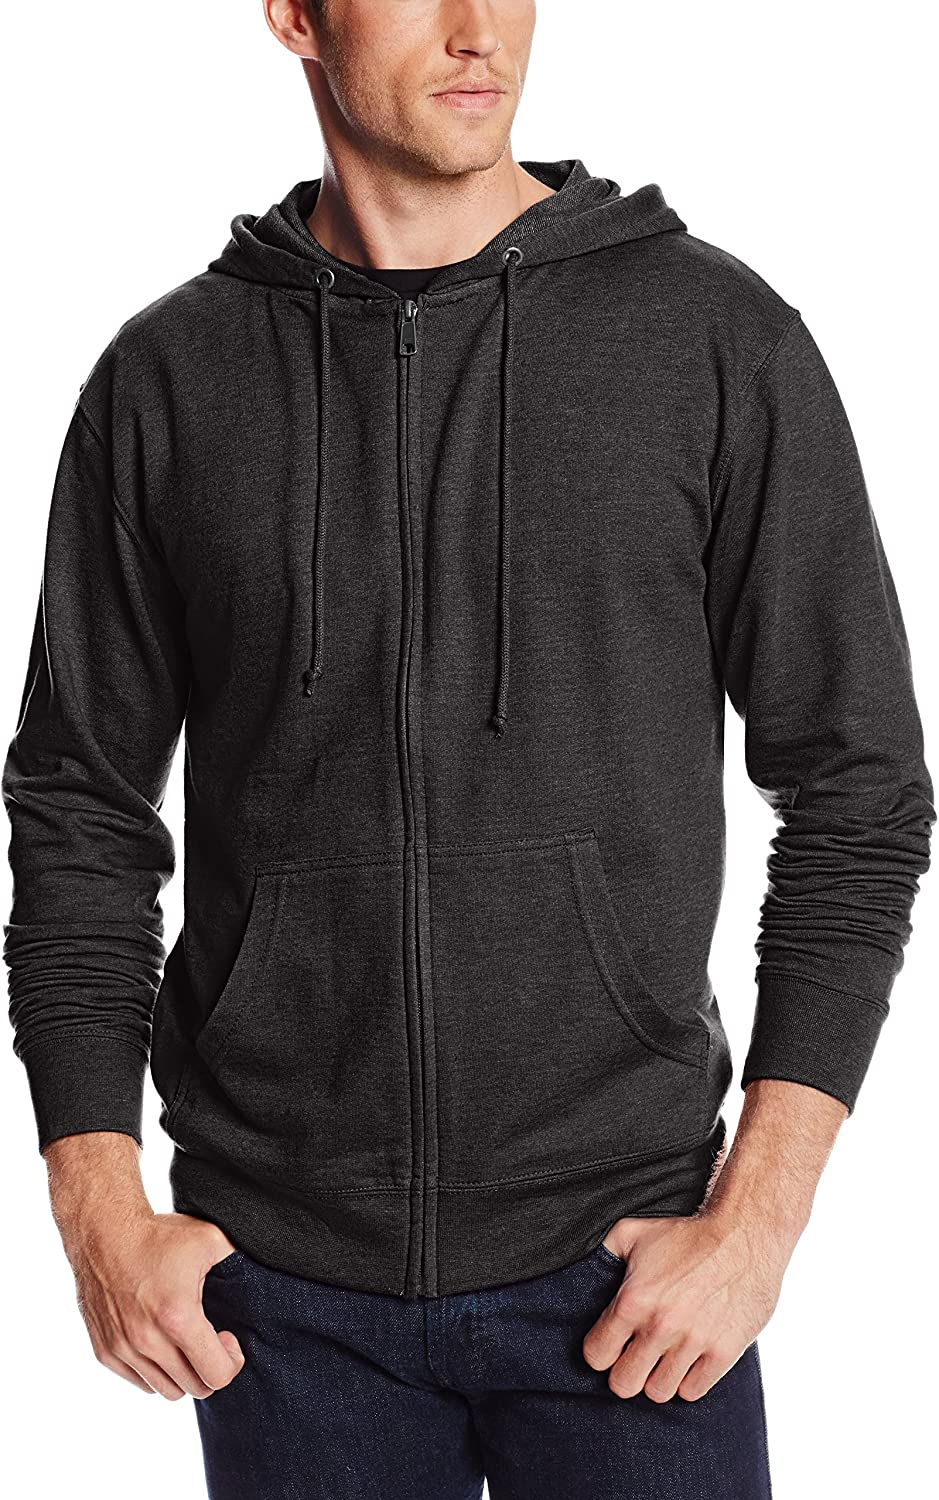 Unisex French Terry Zip Hoodie